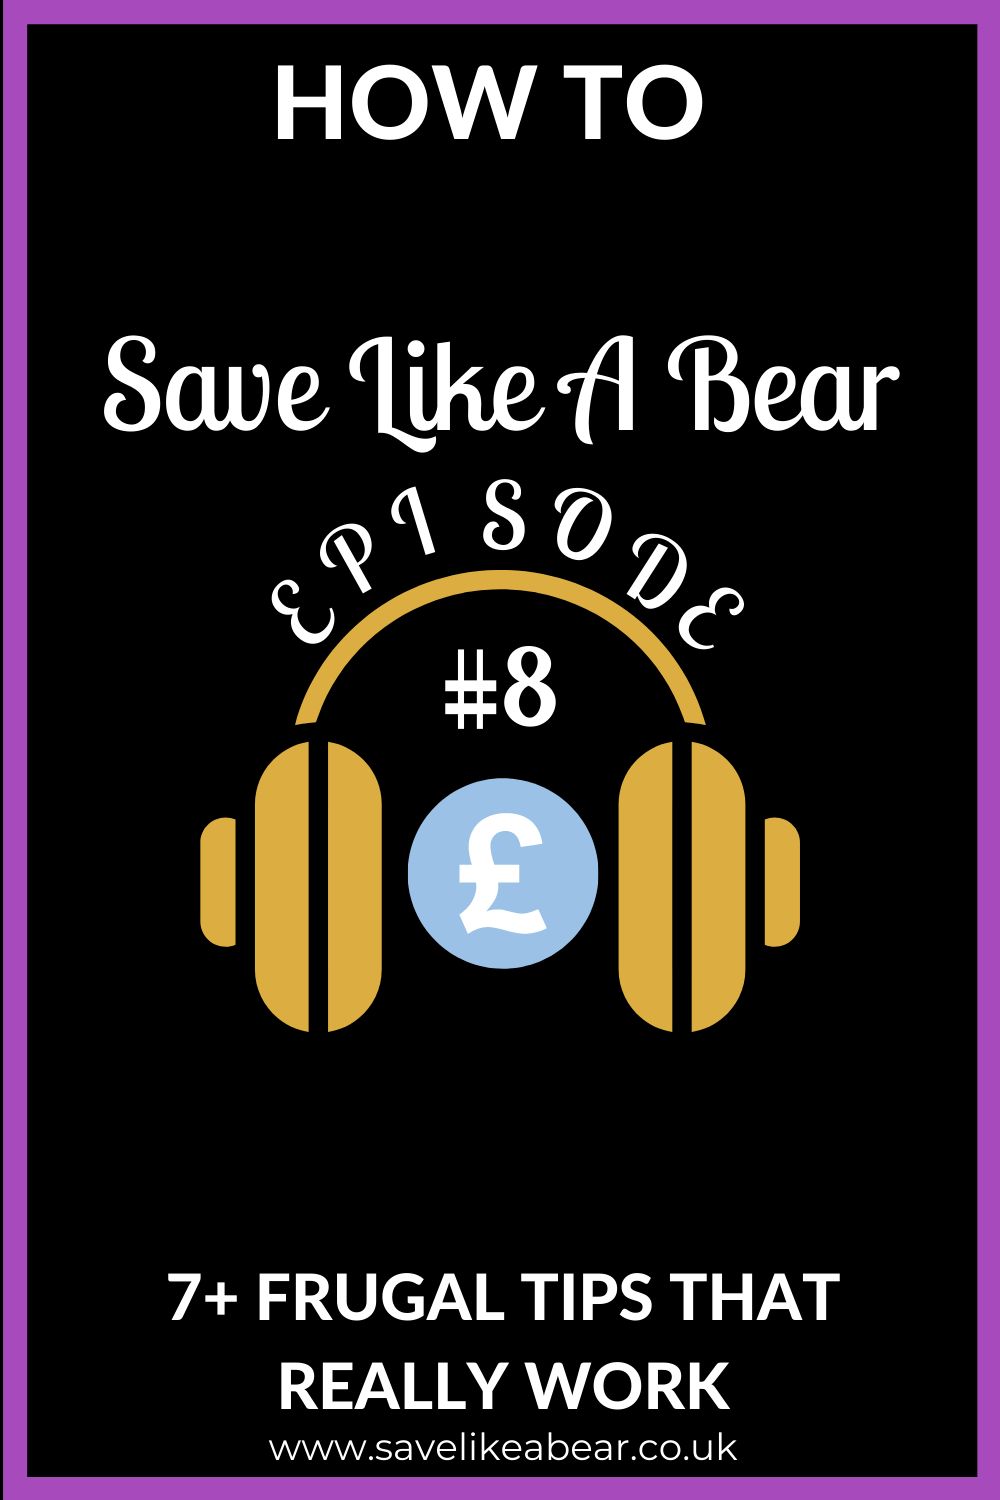 how to save like a bear episode 8 hate compromise 7+ frugal tips that really work